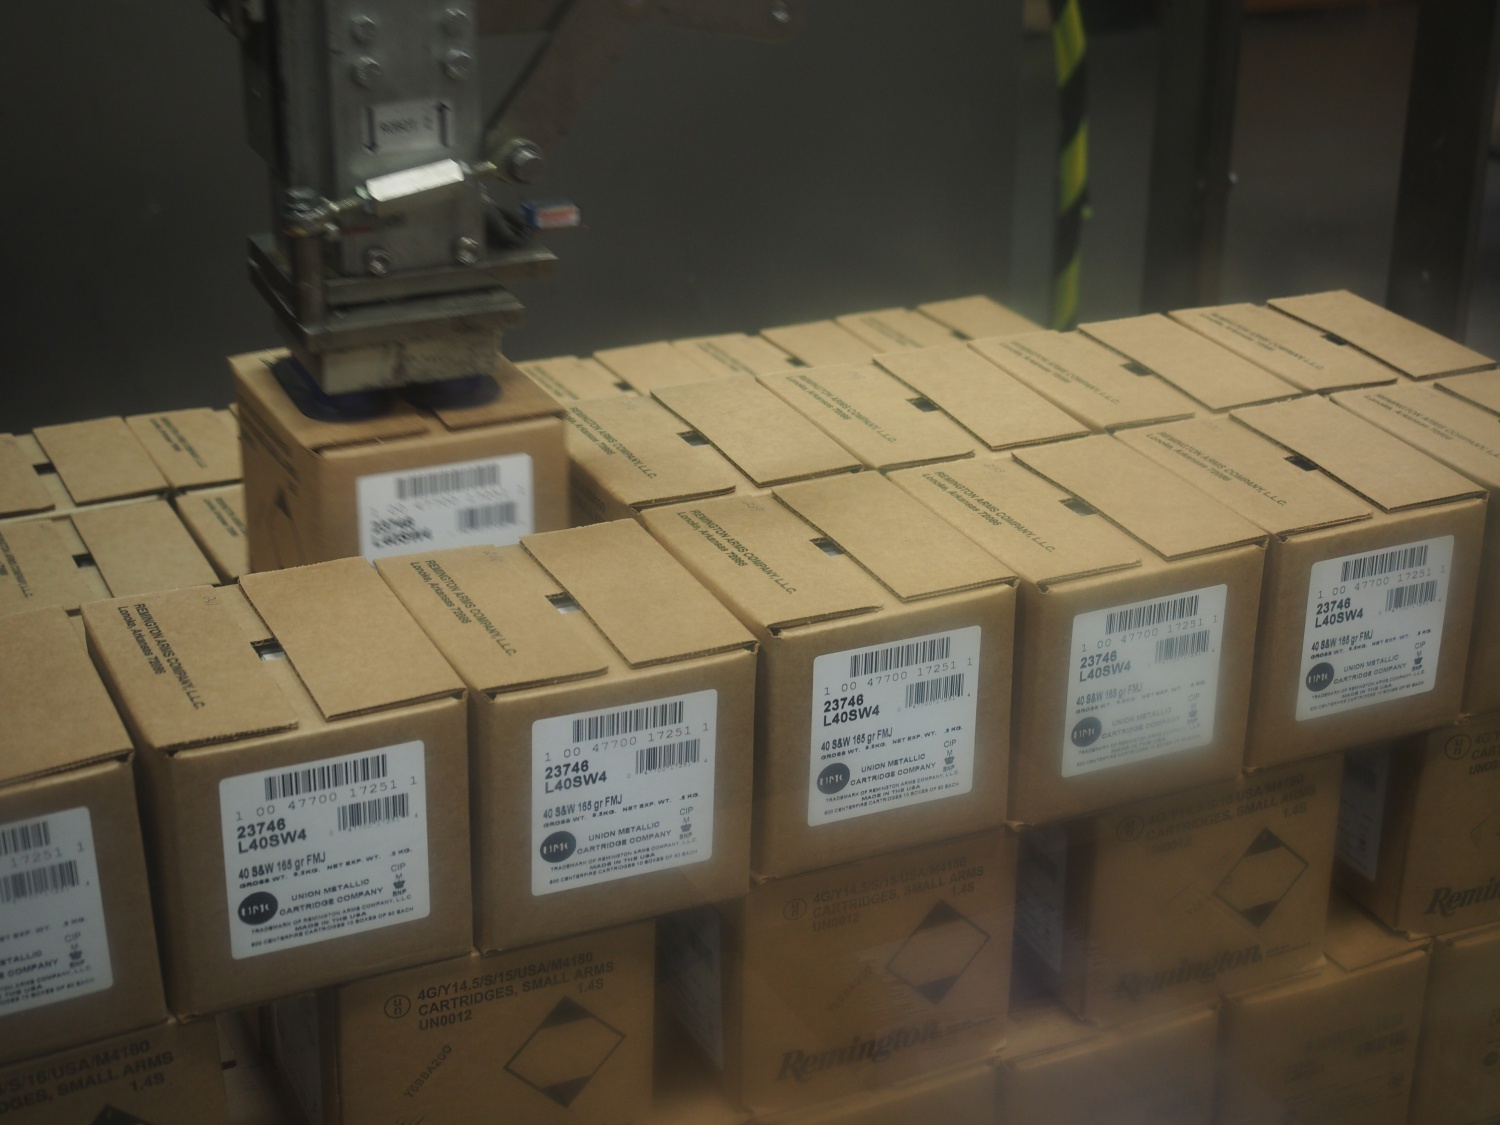 Robotic arm loading cases onto the pallet.